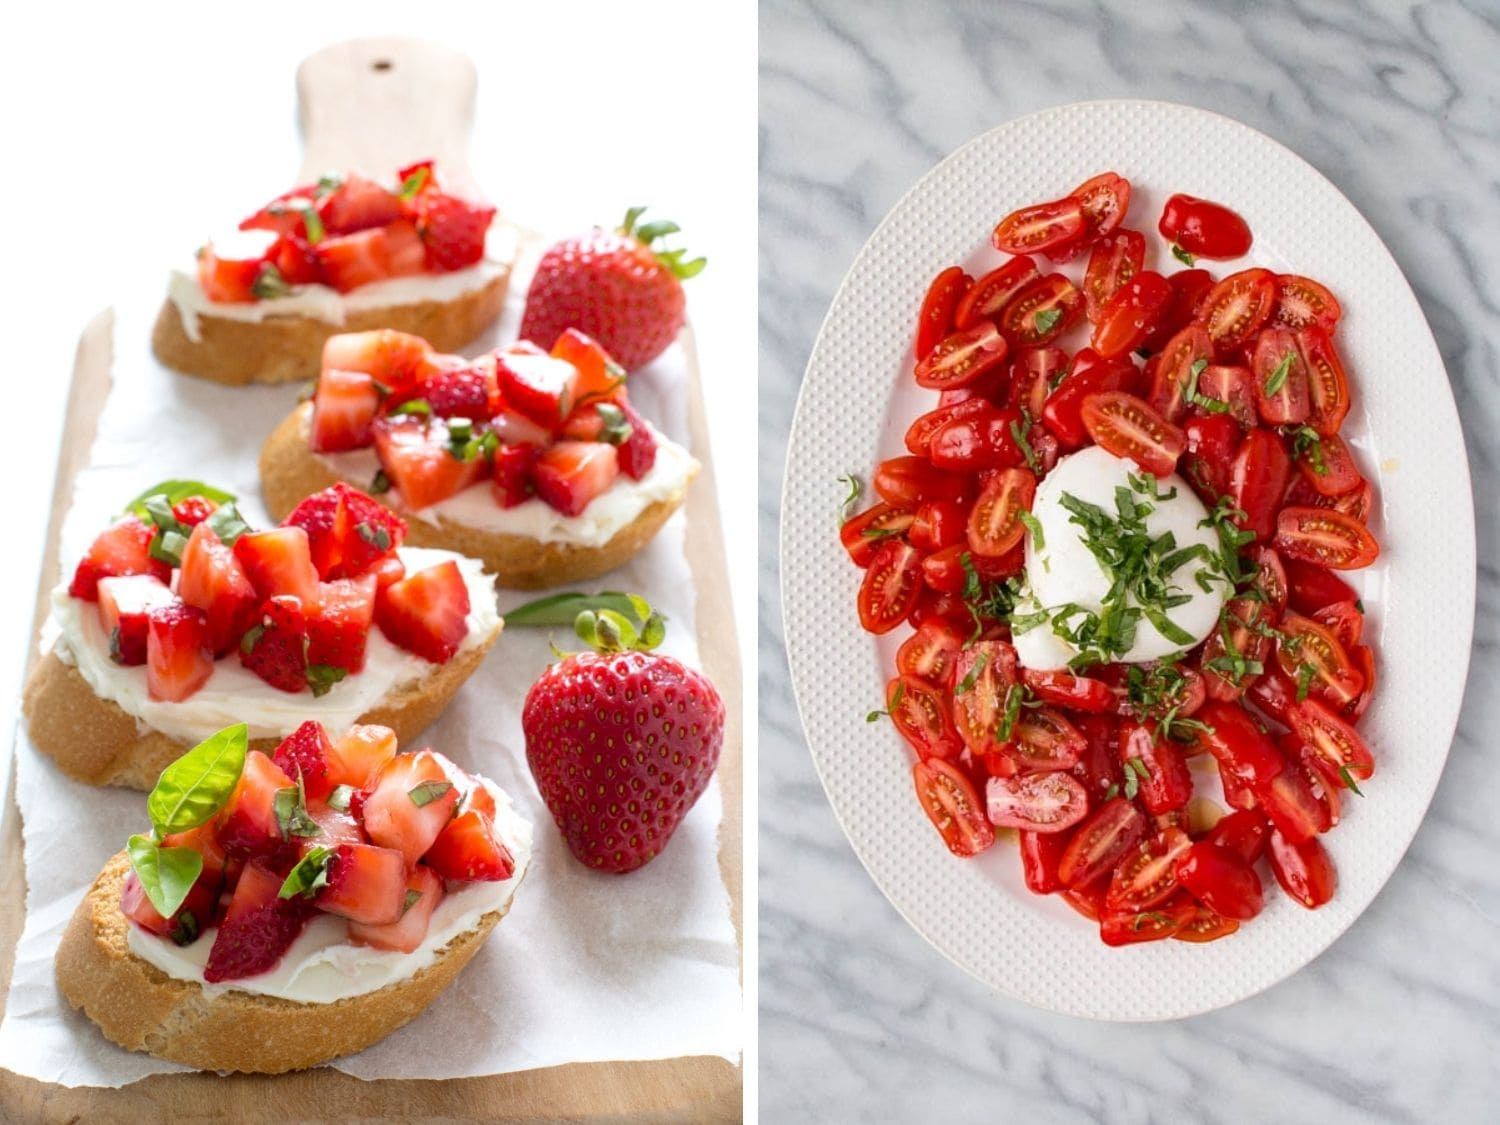 Collage showing strawberry basil bruschetta on a wooden serving board and a white serving dish of tomato salad.